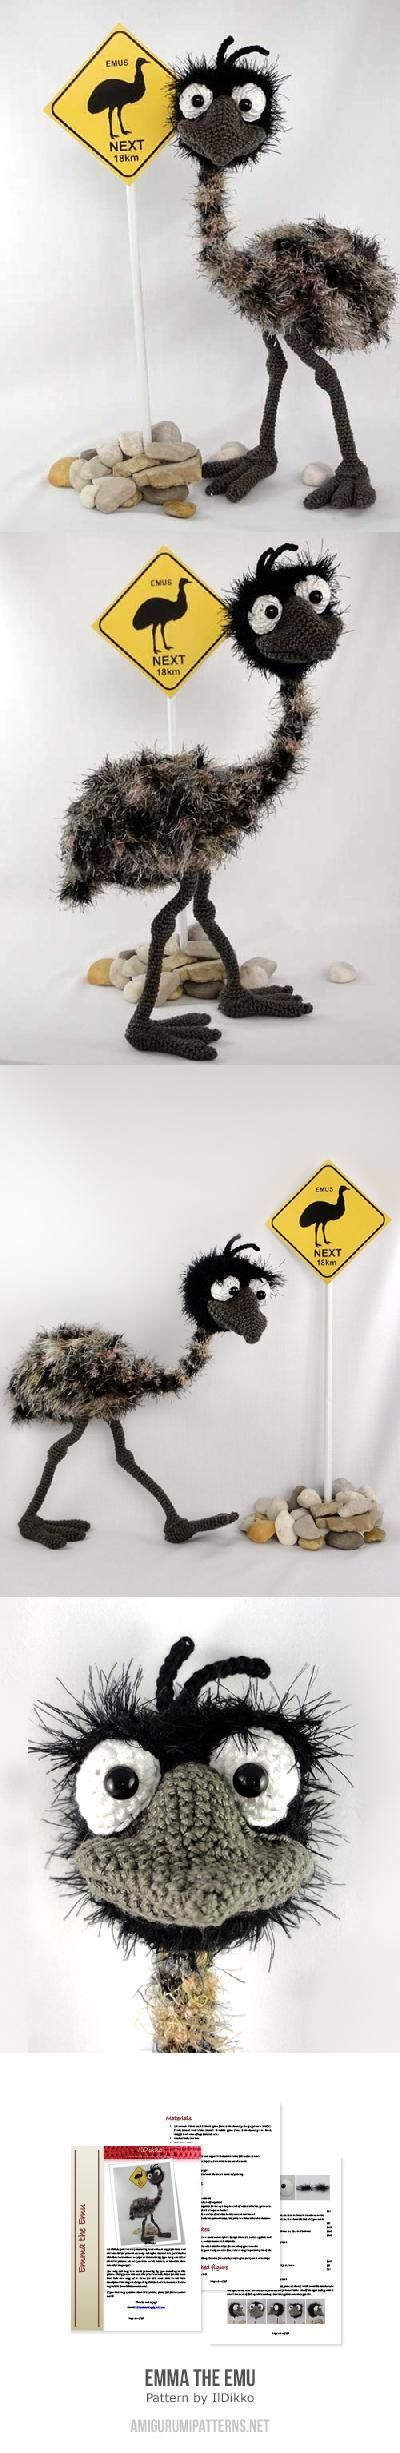 Emma the Emu amigurumi pattern by IlDikko | Pinterest | Amigurumi ...